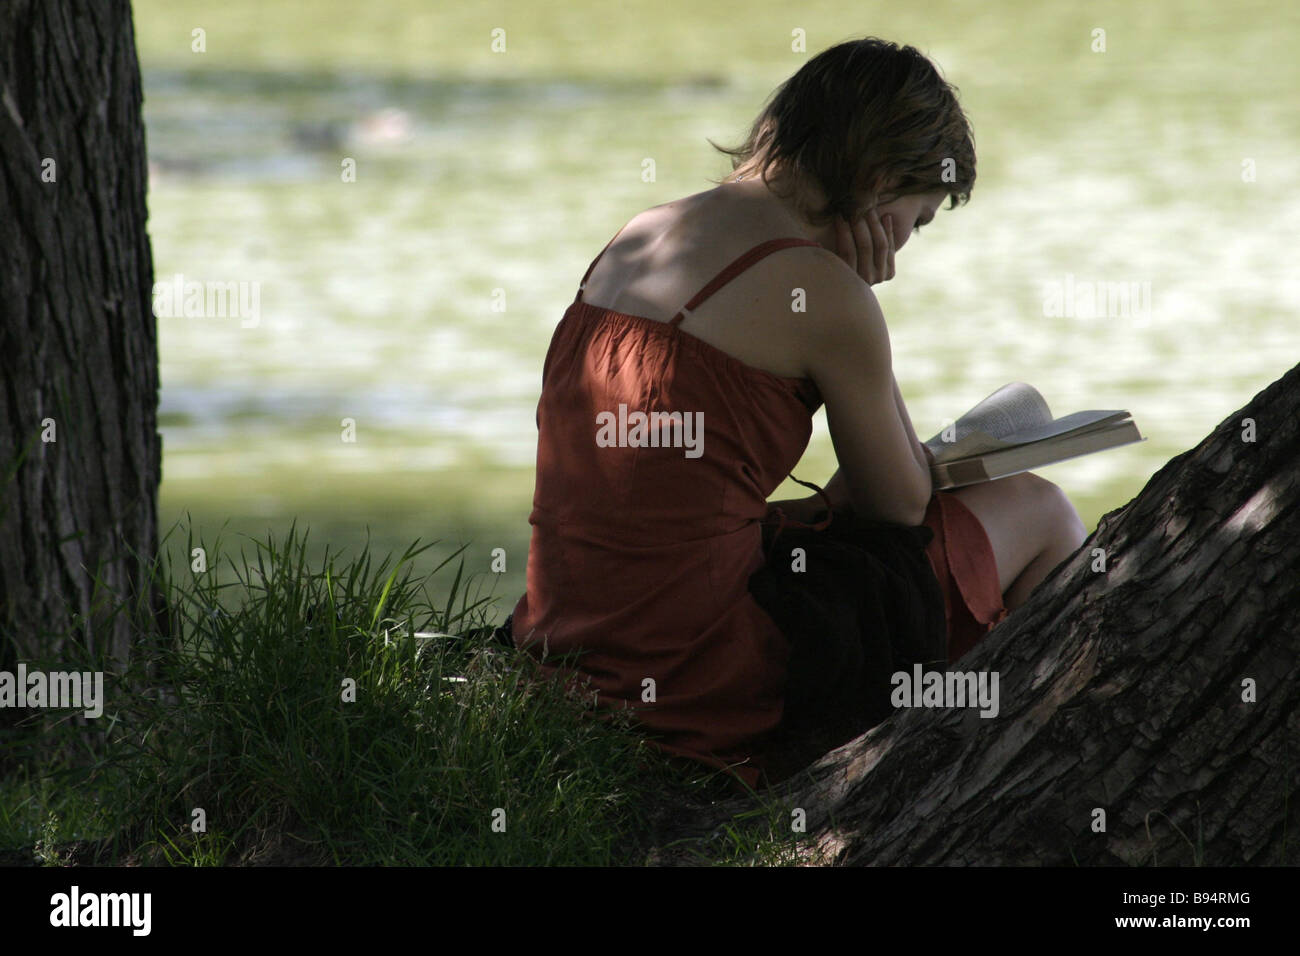 A girl engrossed in reading in a Moscow public garden - Stock Image